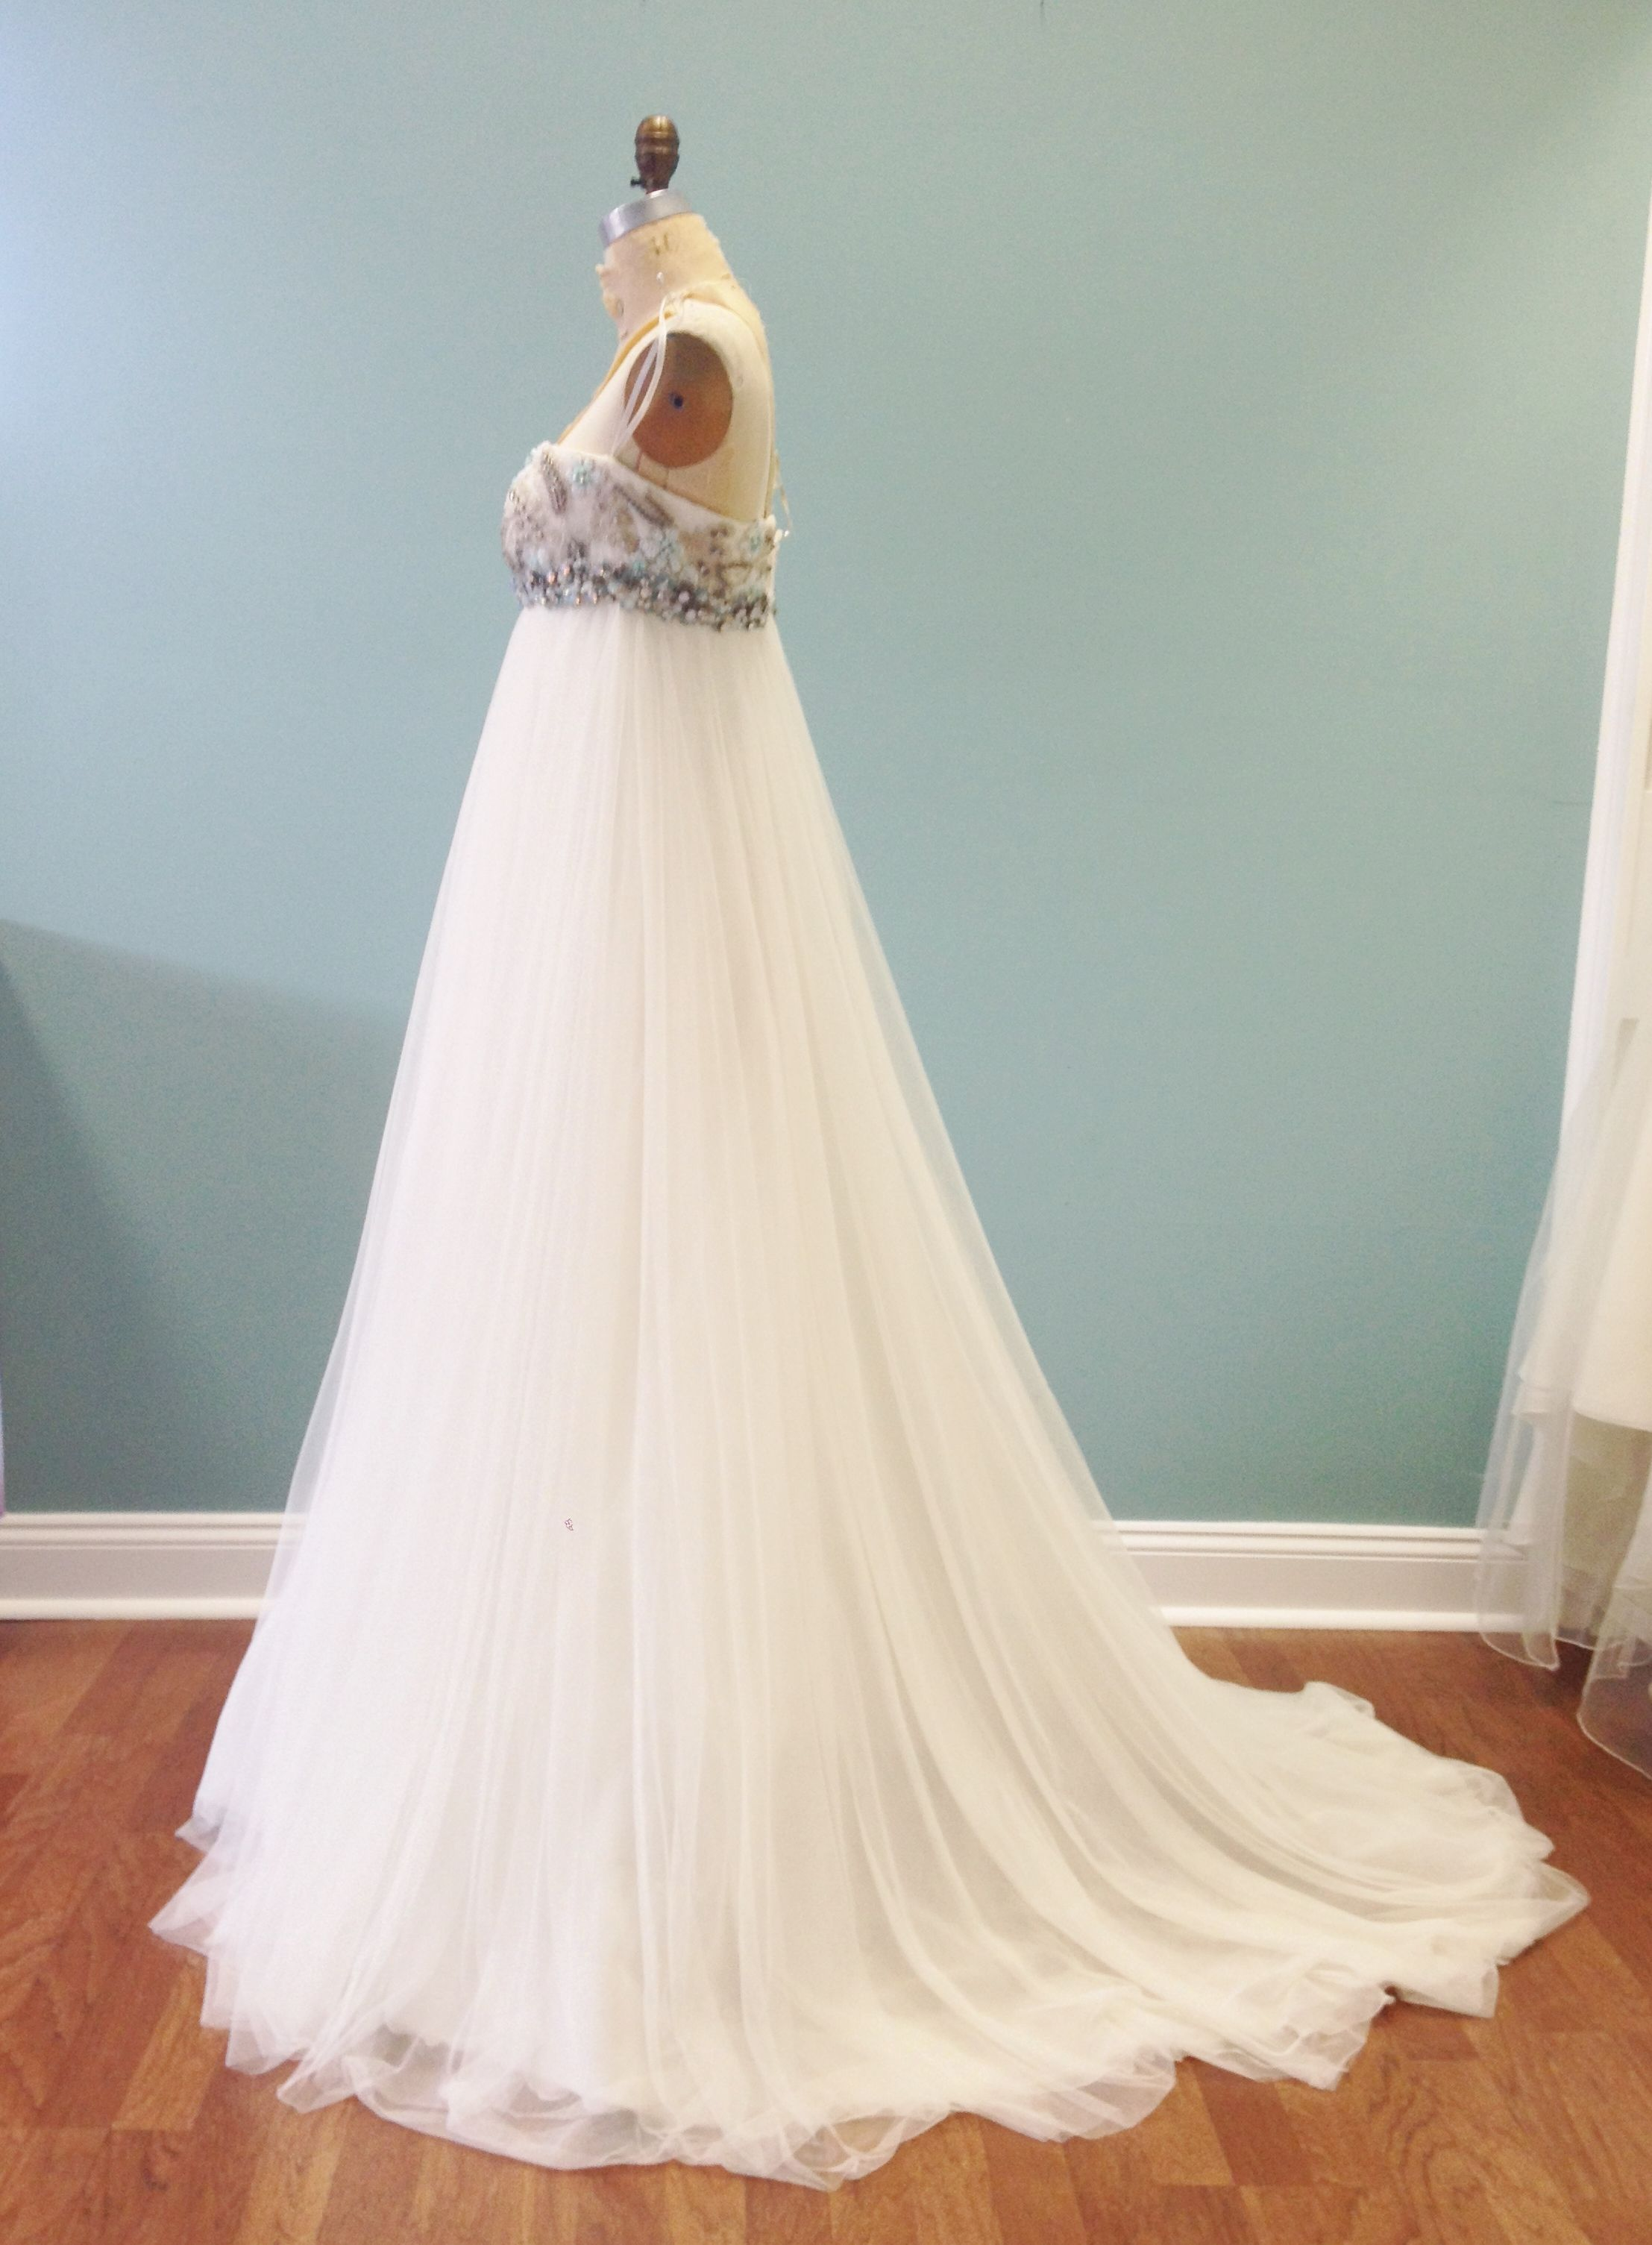 Edelweiss side view (sold) | Bridal gowns we carry | Pinterest ...